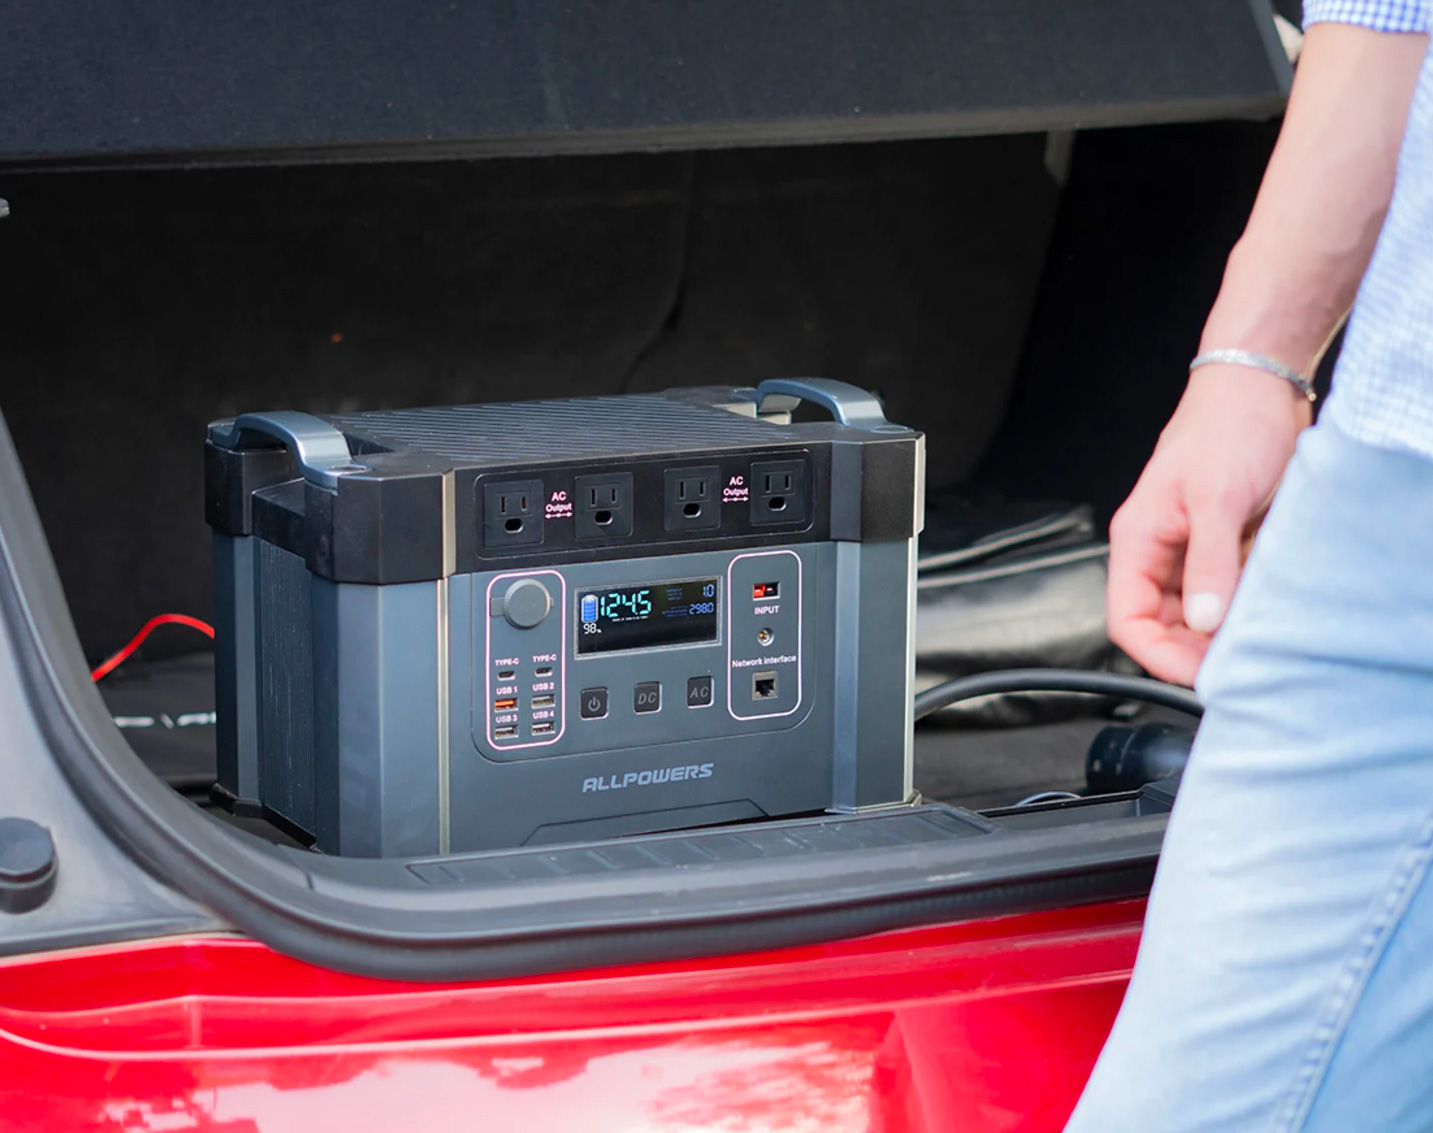 The Monster X Portable Power Station Can Charge a Car at werd.com